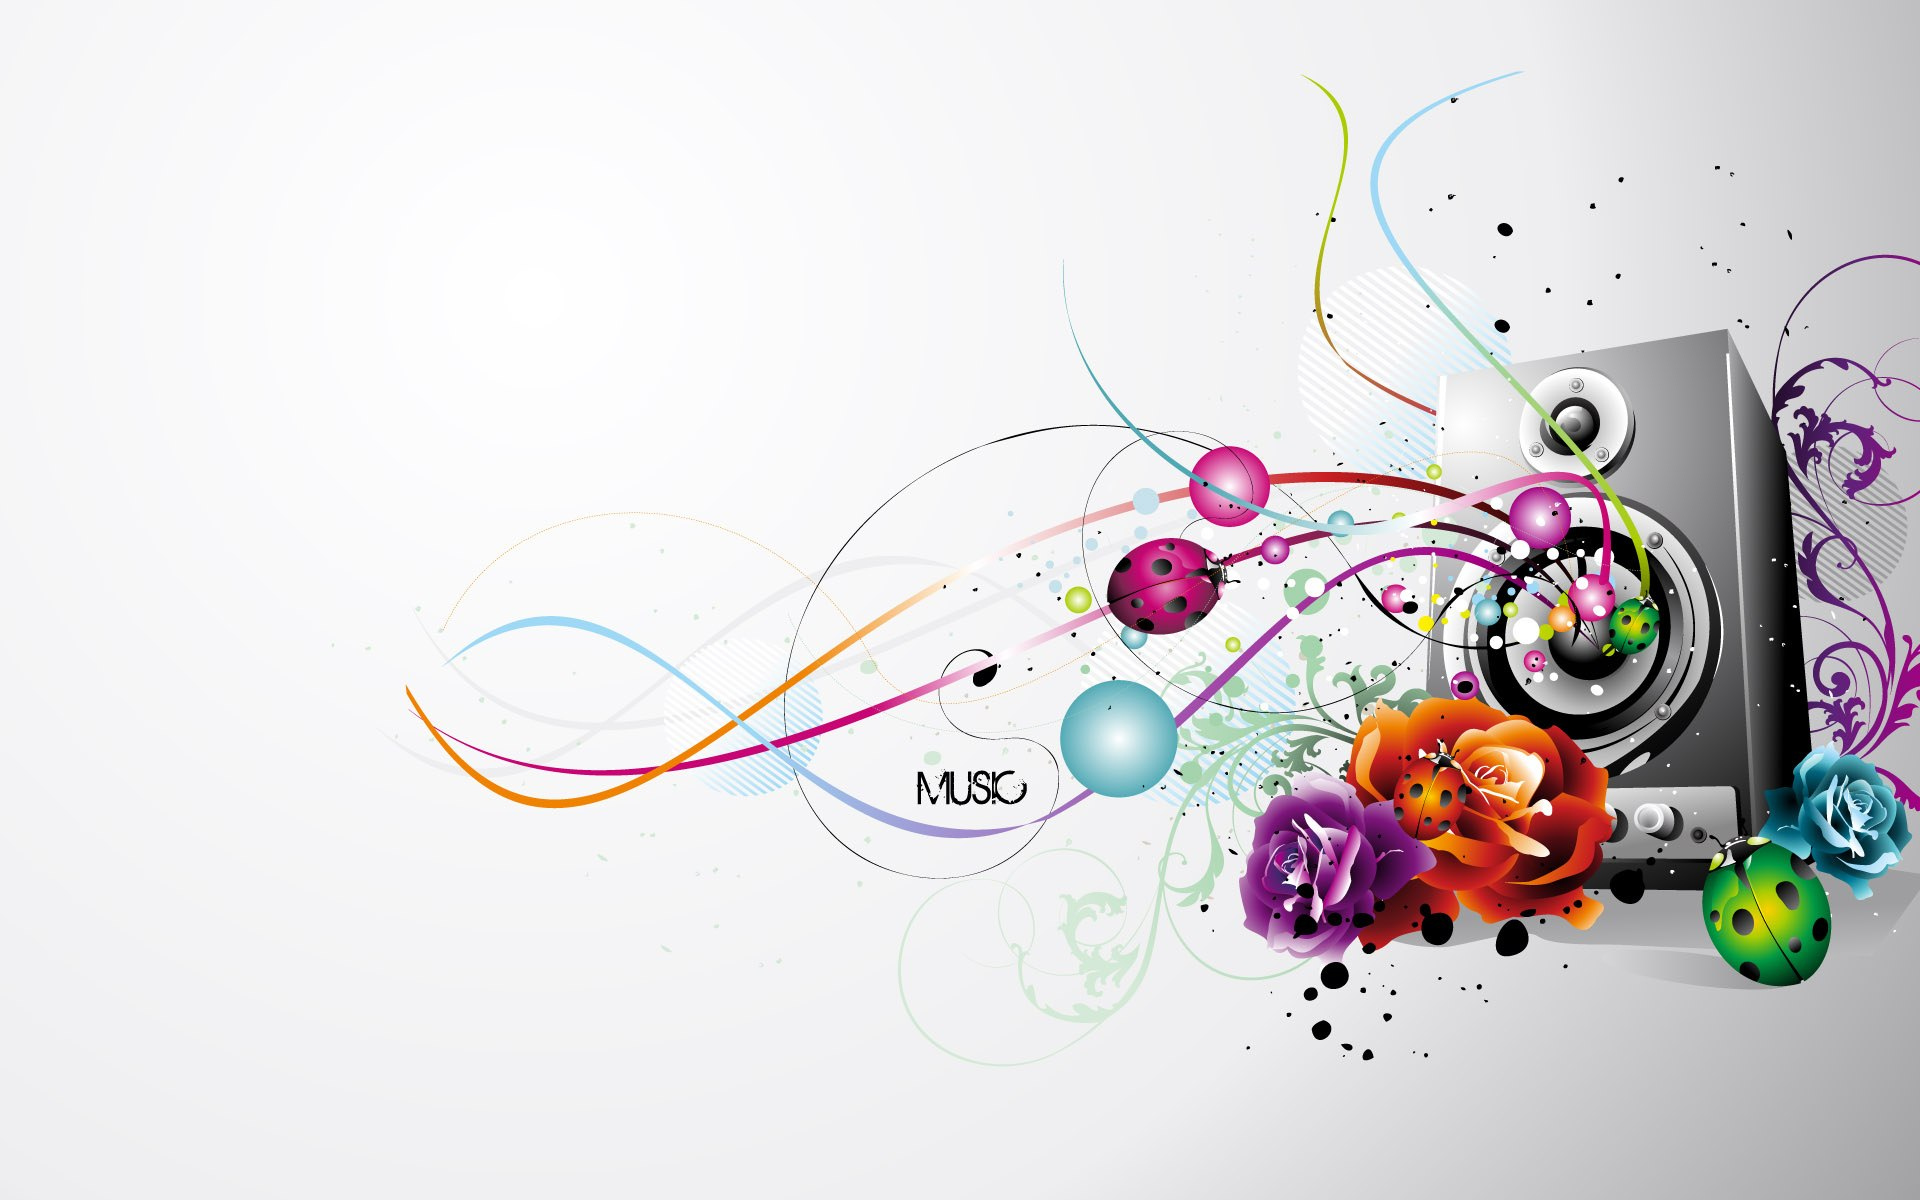 Music Background Wallpaper 011